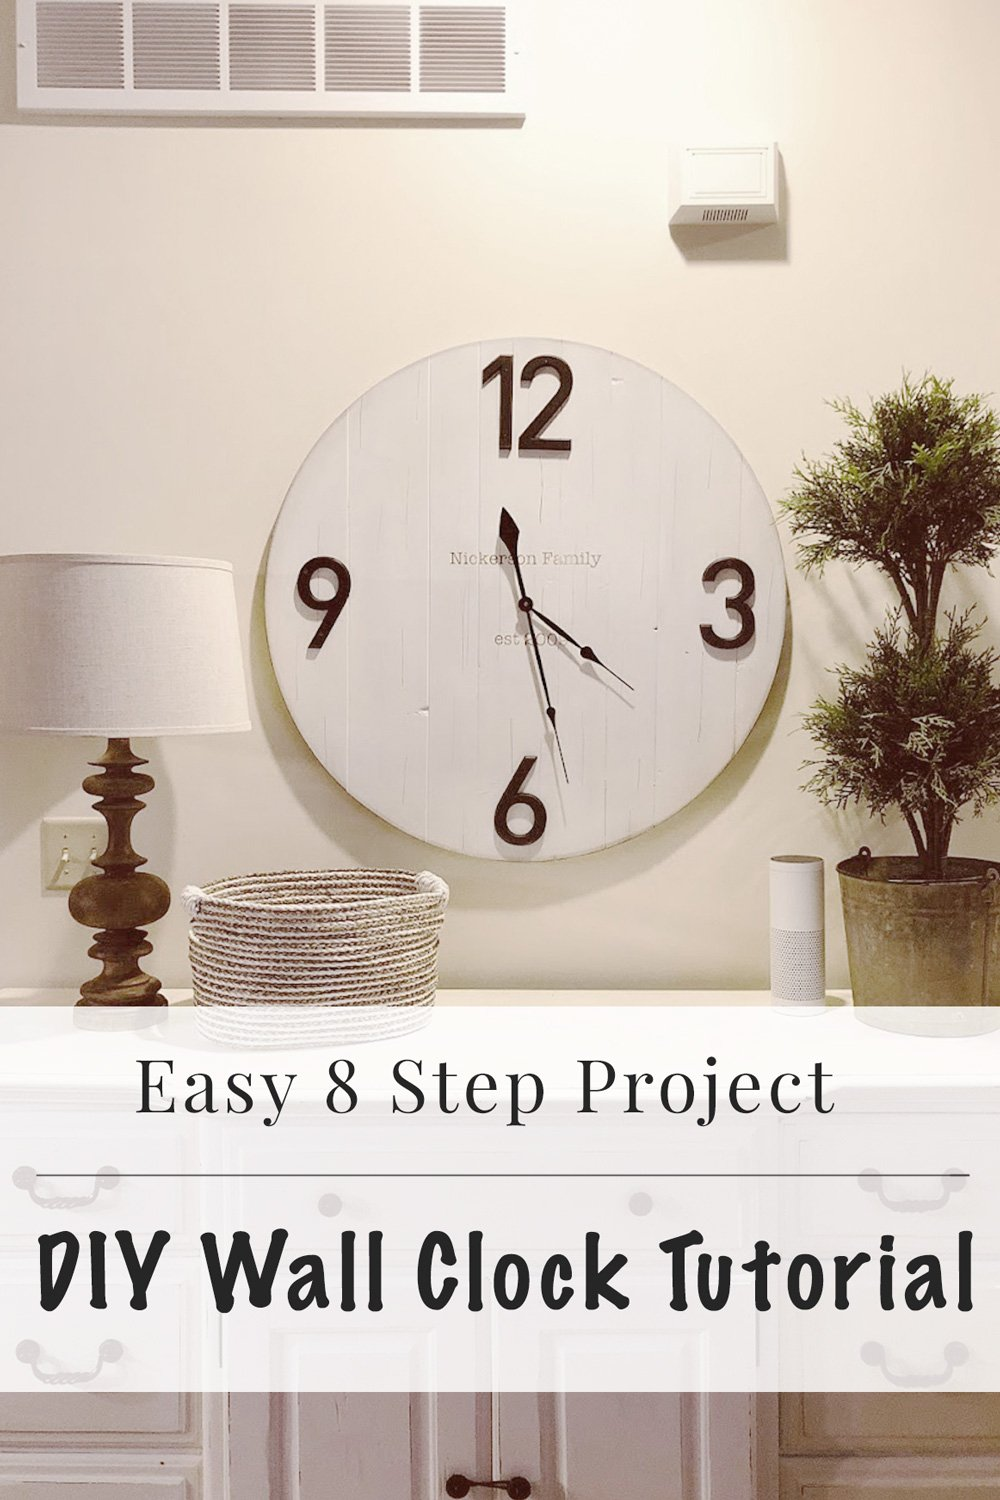 How to Make a DIY Wall Clock in 8 Easy Steps. This tutorial is so easy and with very few materials, you can make it over a few hours! It gives you that fixer upper style and relaxed cottage style for your space.